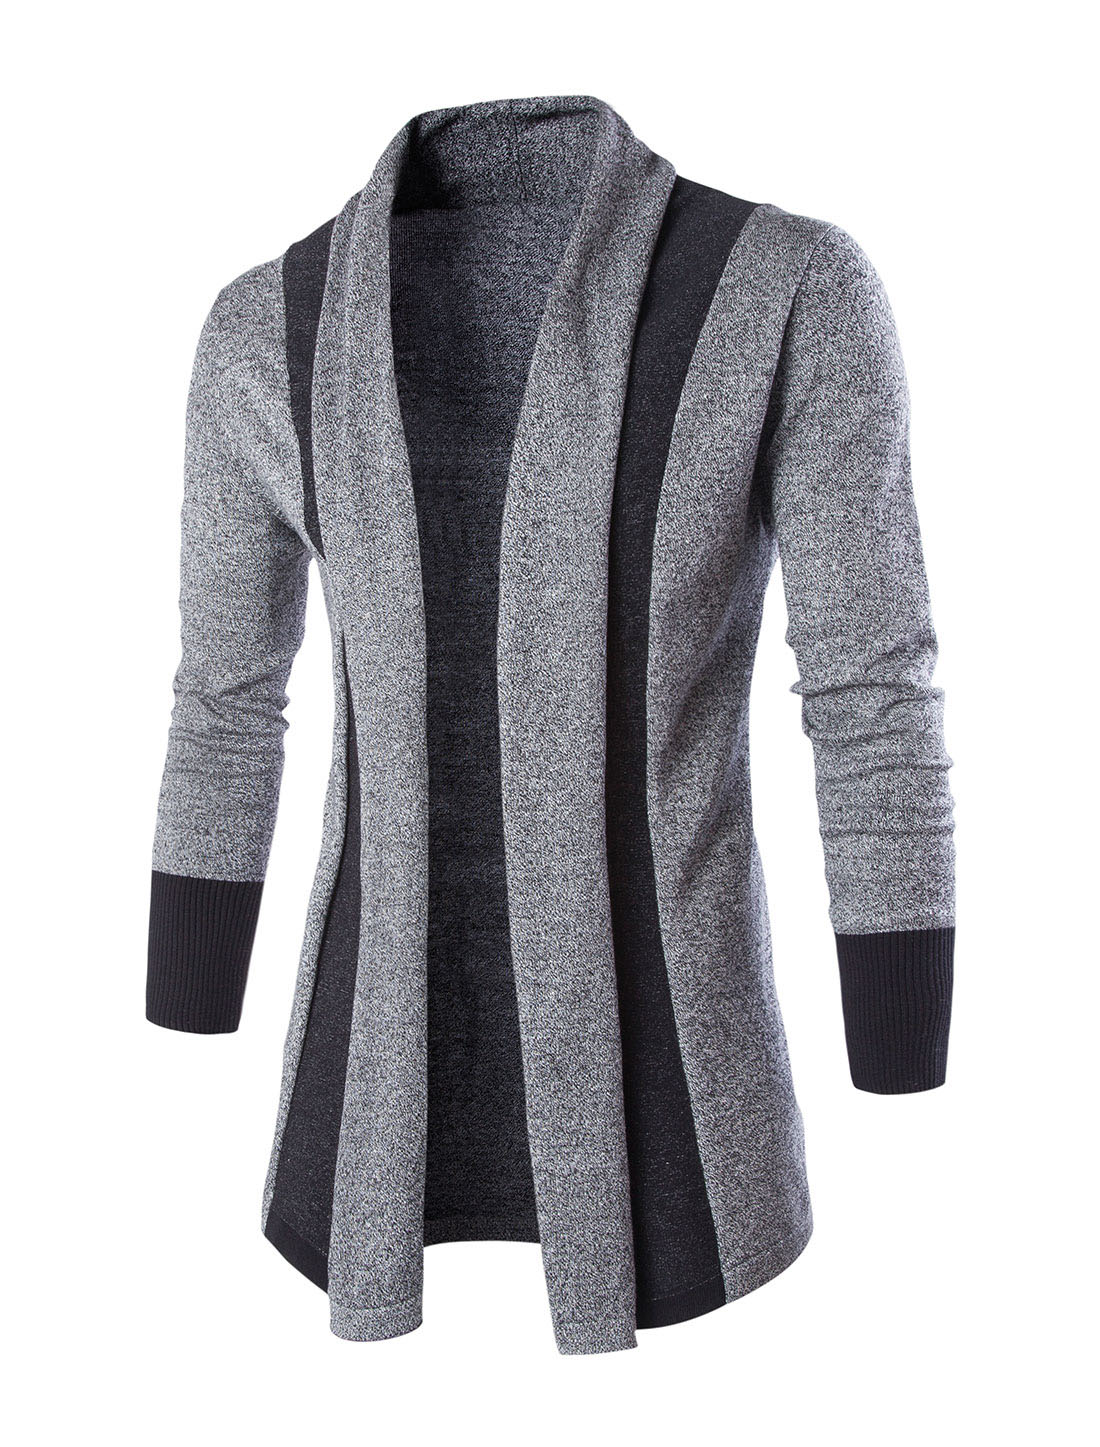 Men Shawl Collar Contrast Color Marled Cardigan Gray M